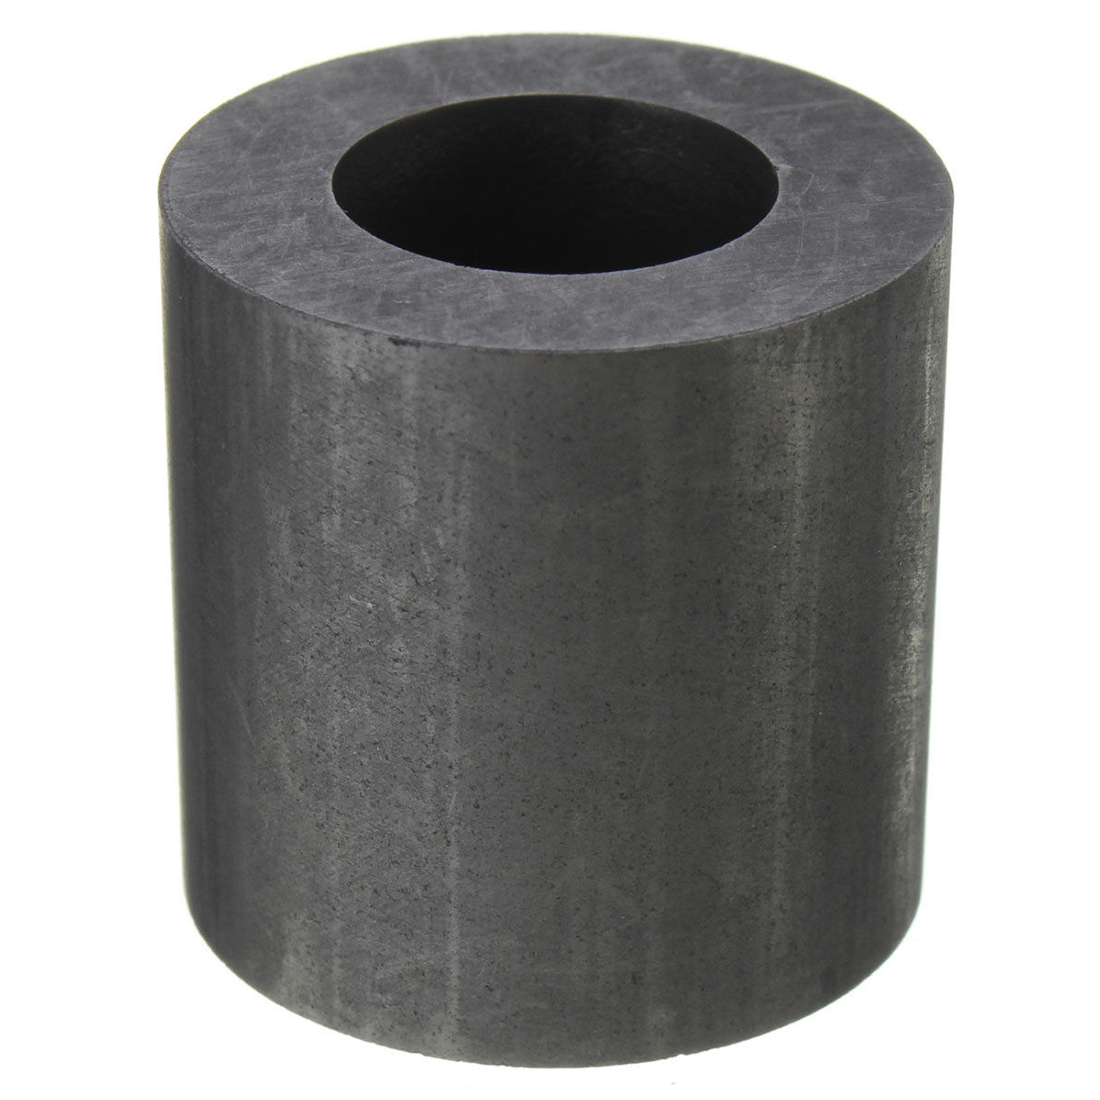 Pure Graphite Crucible Melting Gold Silver Copper Metal 30Mm X 30Mm